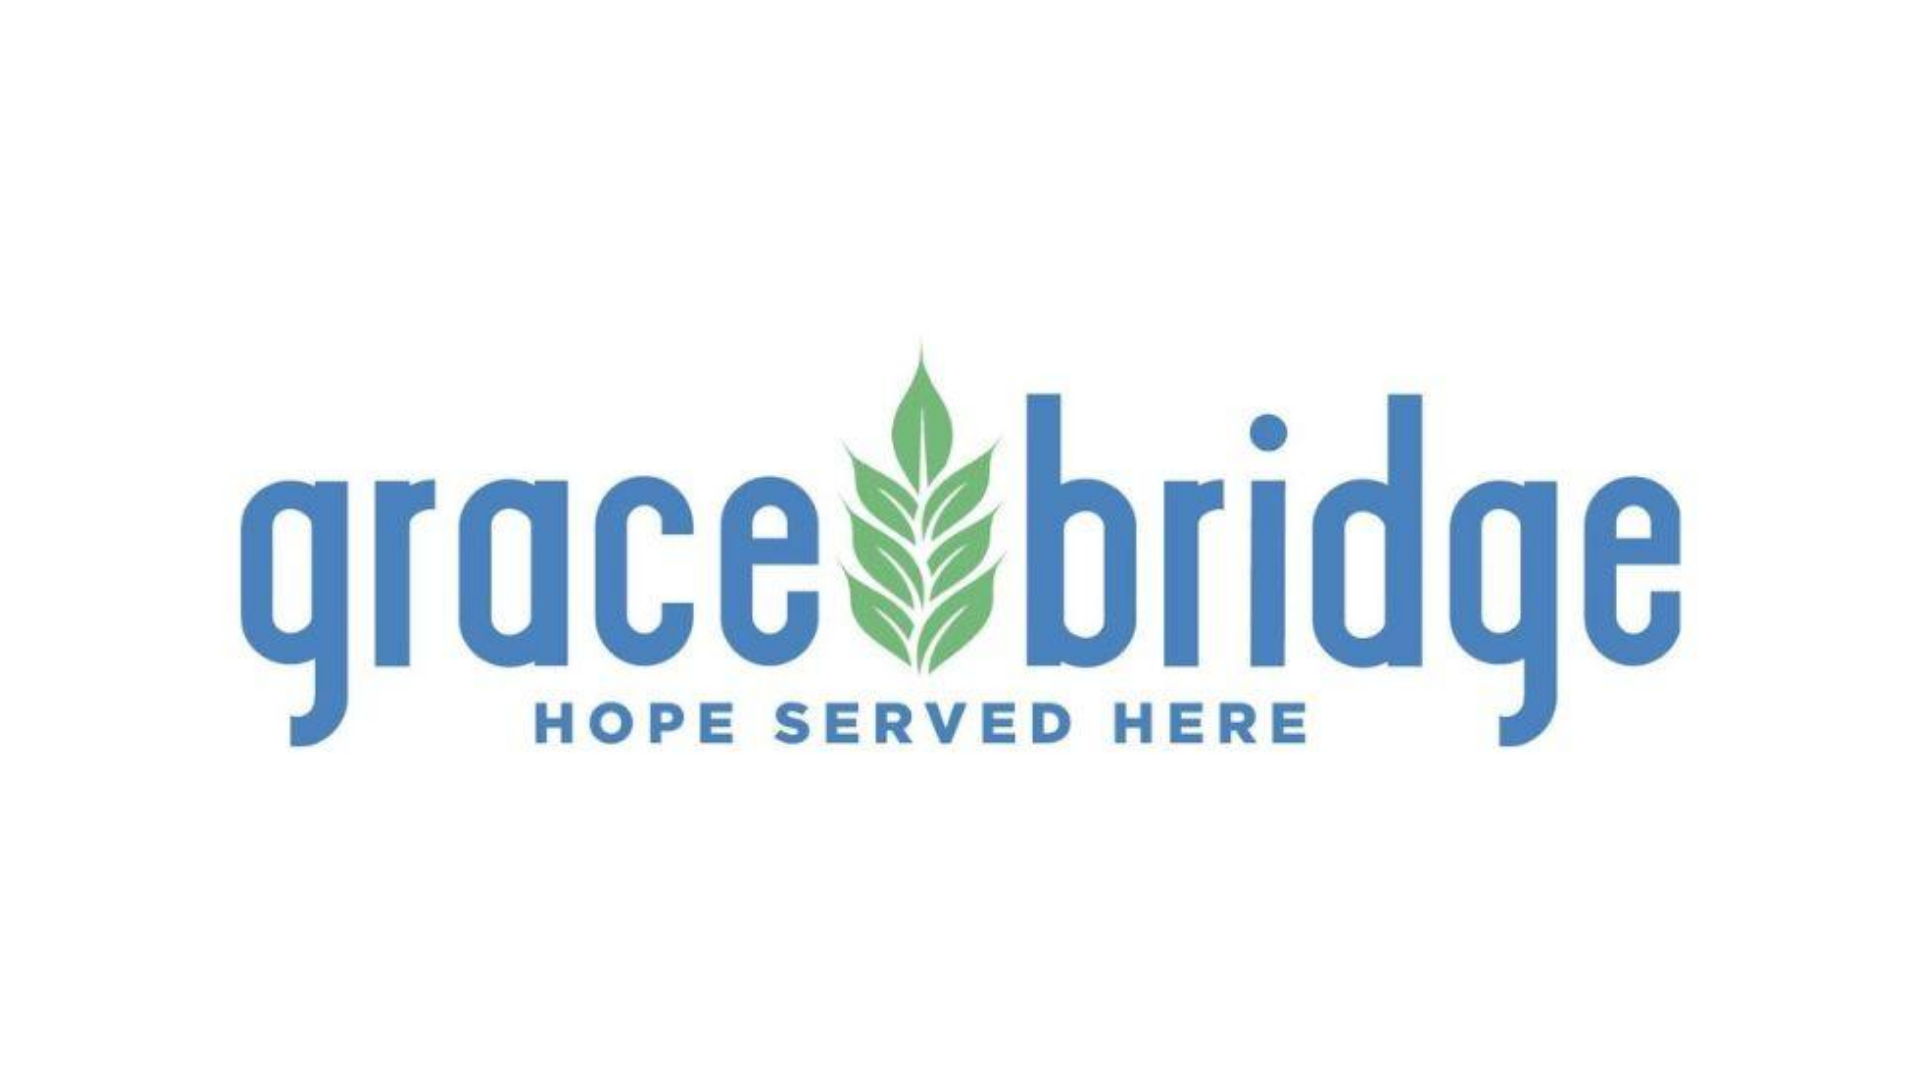 Grace Bridge Event image